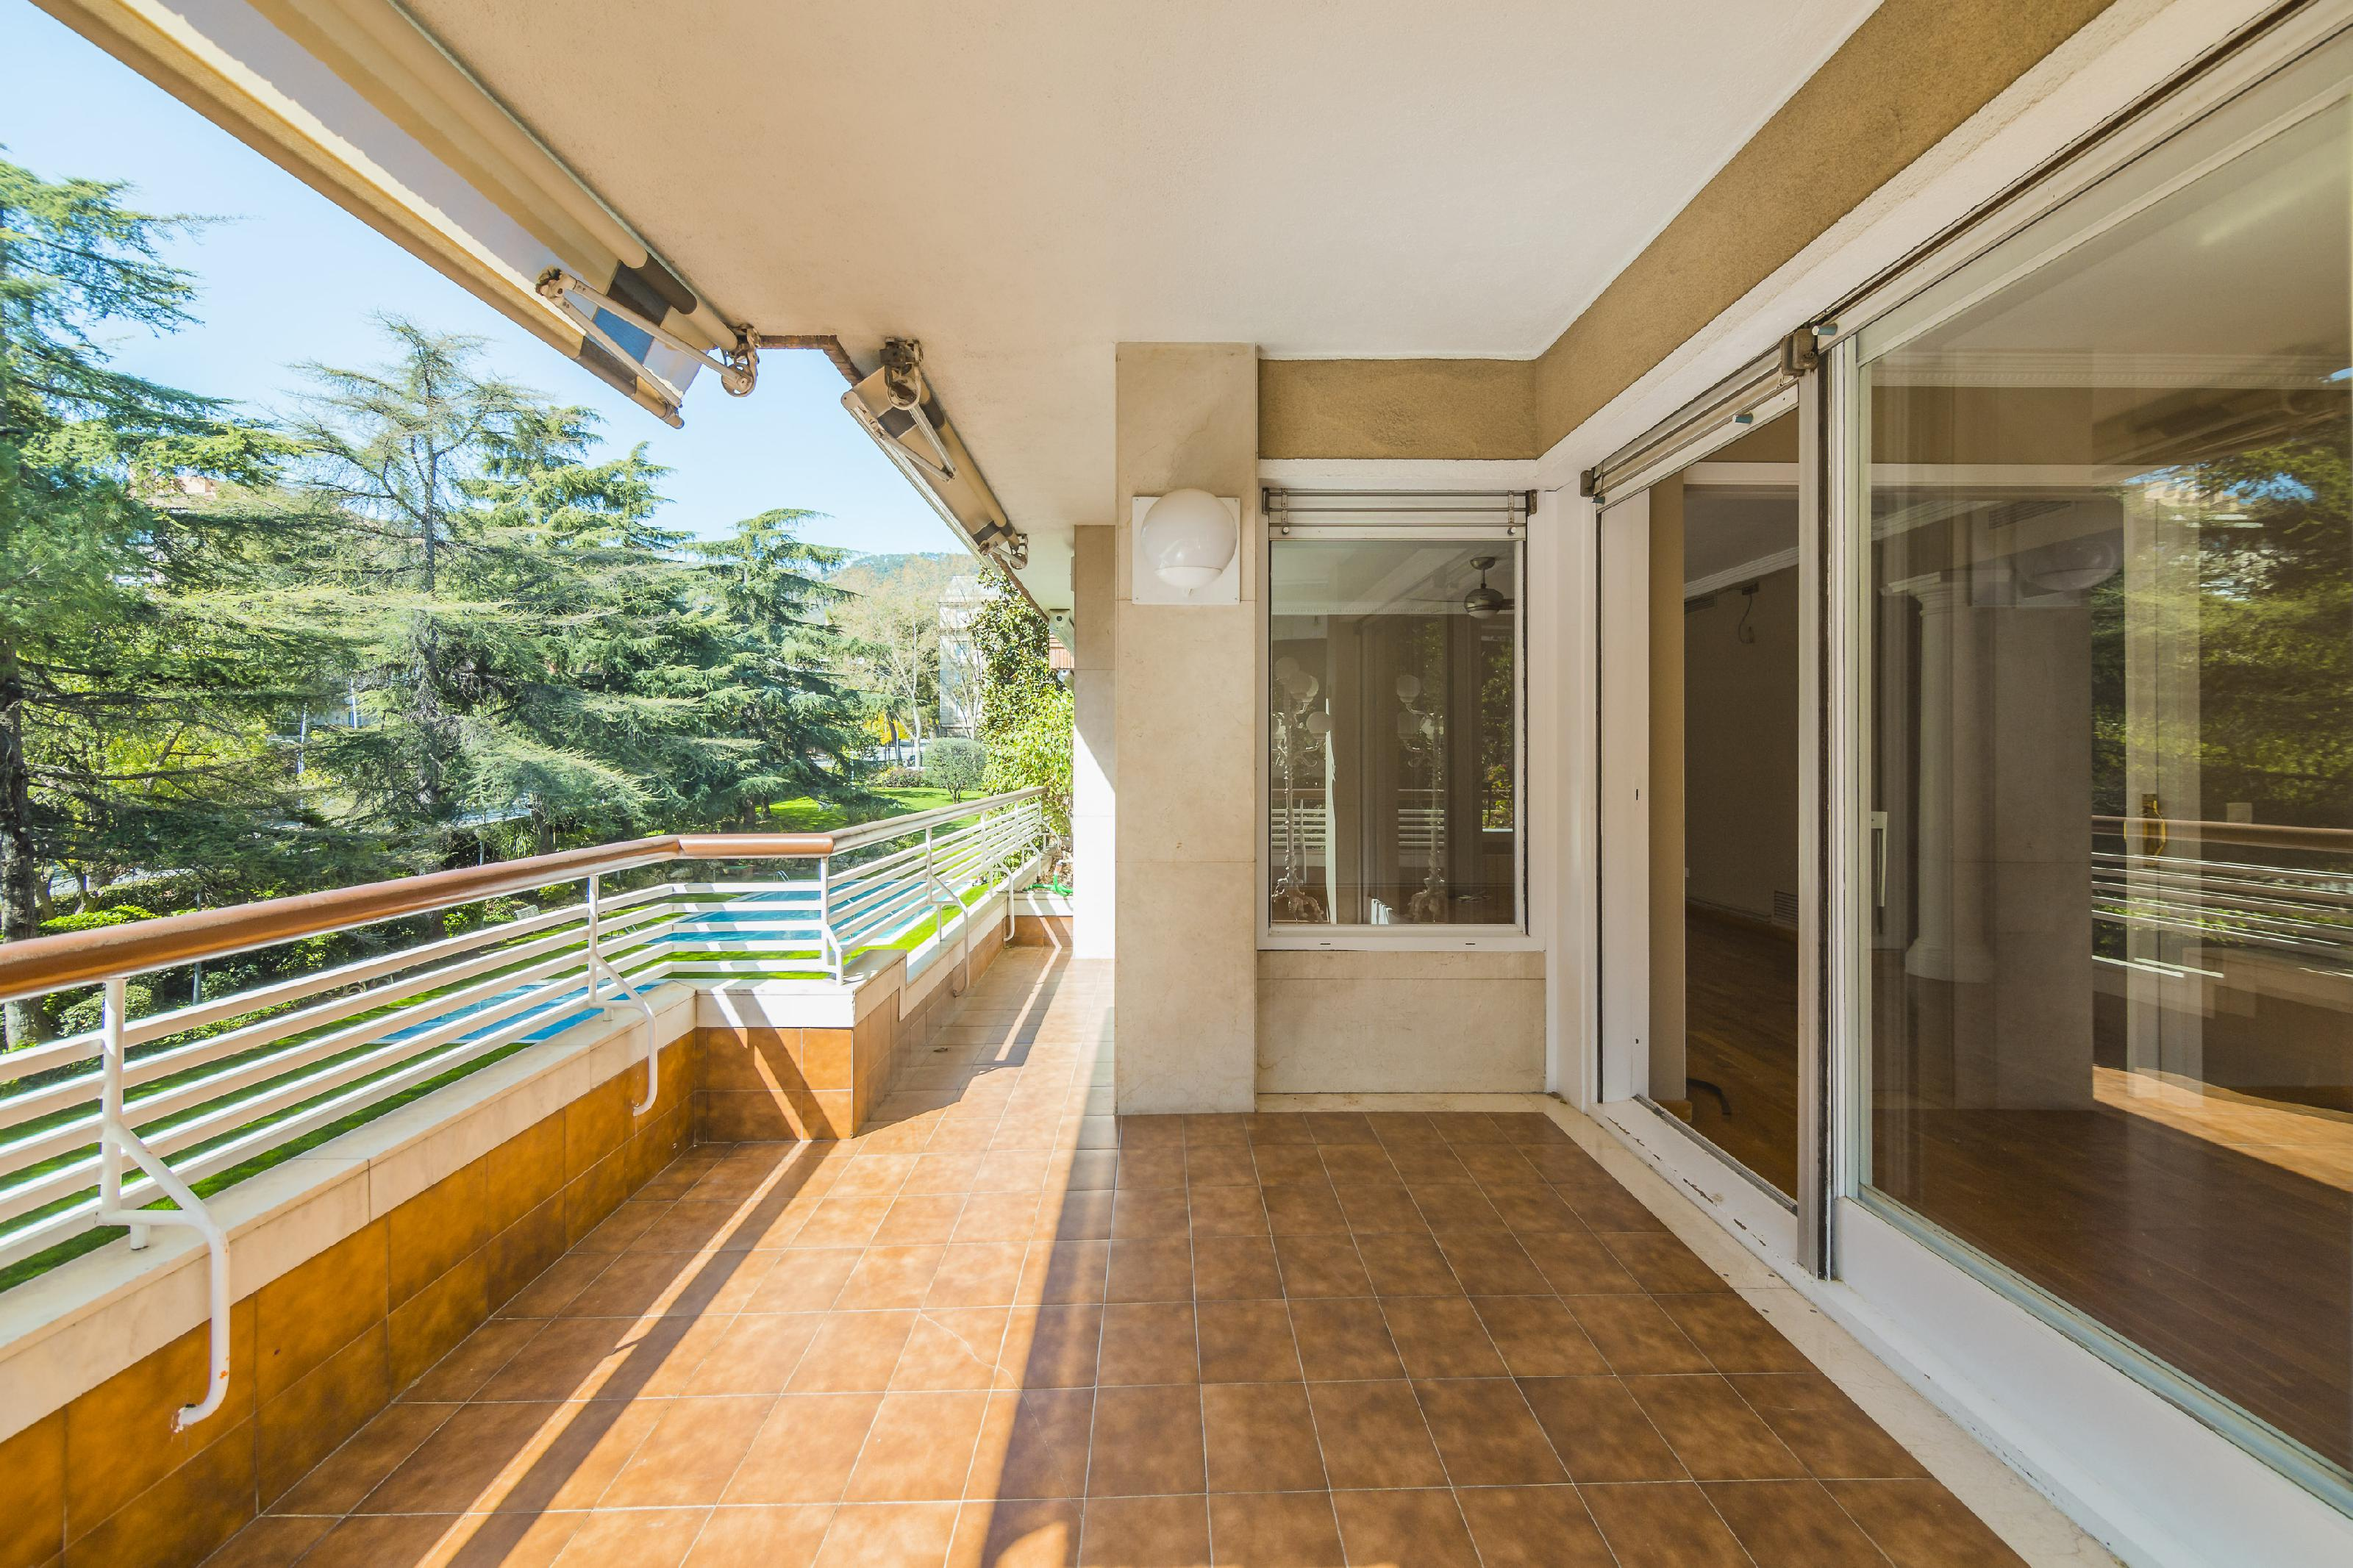 247560 Flat for sale in Les Corts, Pedralbes 3